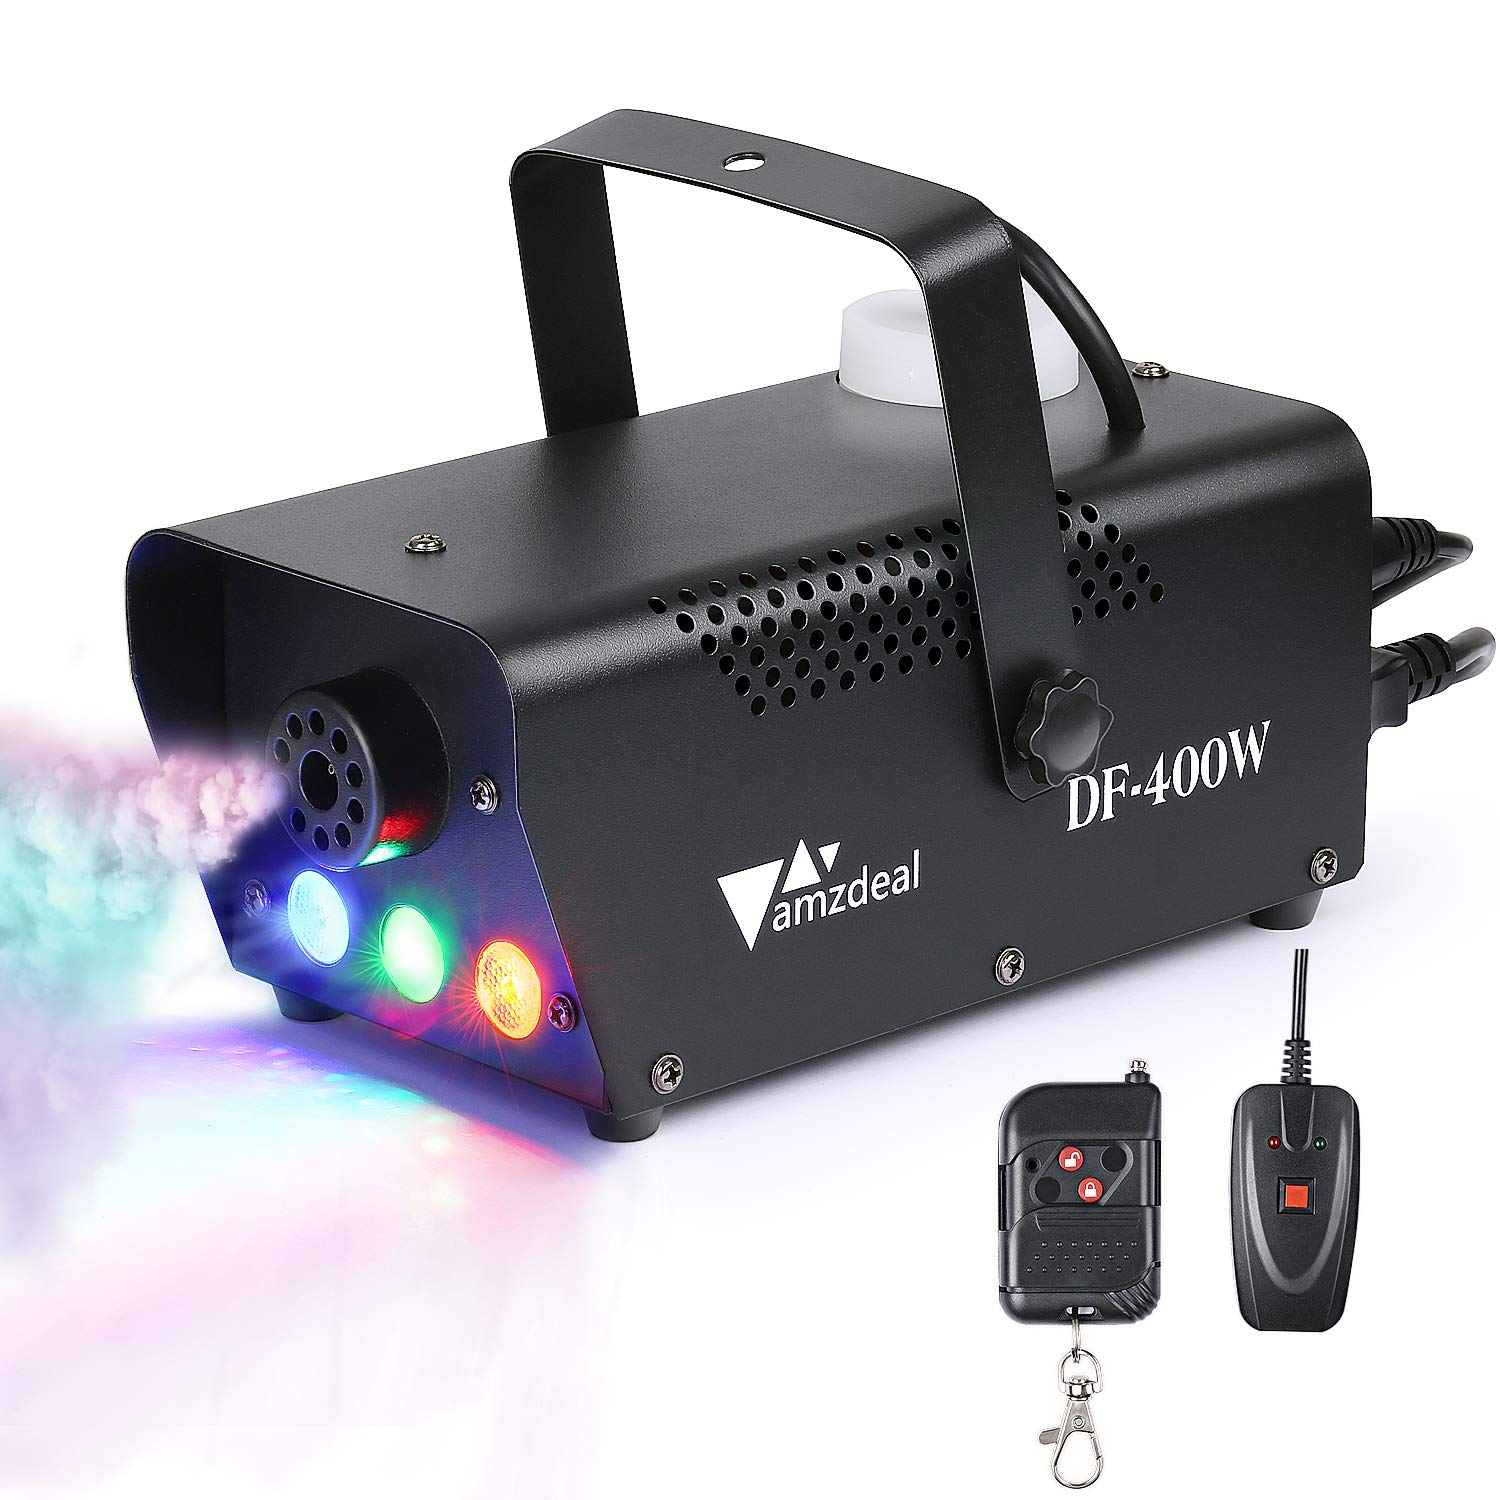 Amzdeal Fog Machine, Portable Smoke Machine with LED Lights Equipped with Wired and Wireless Remote Control Suitable for Home, Party, Christmas, Halloween and Weddings (400W)